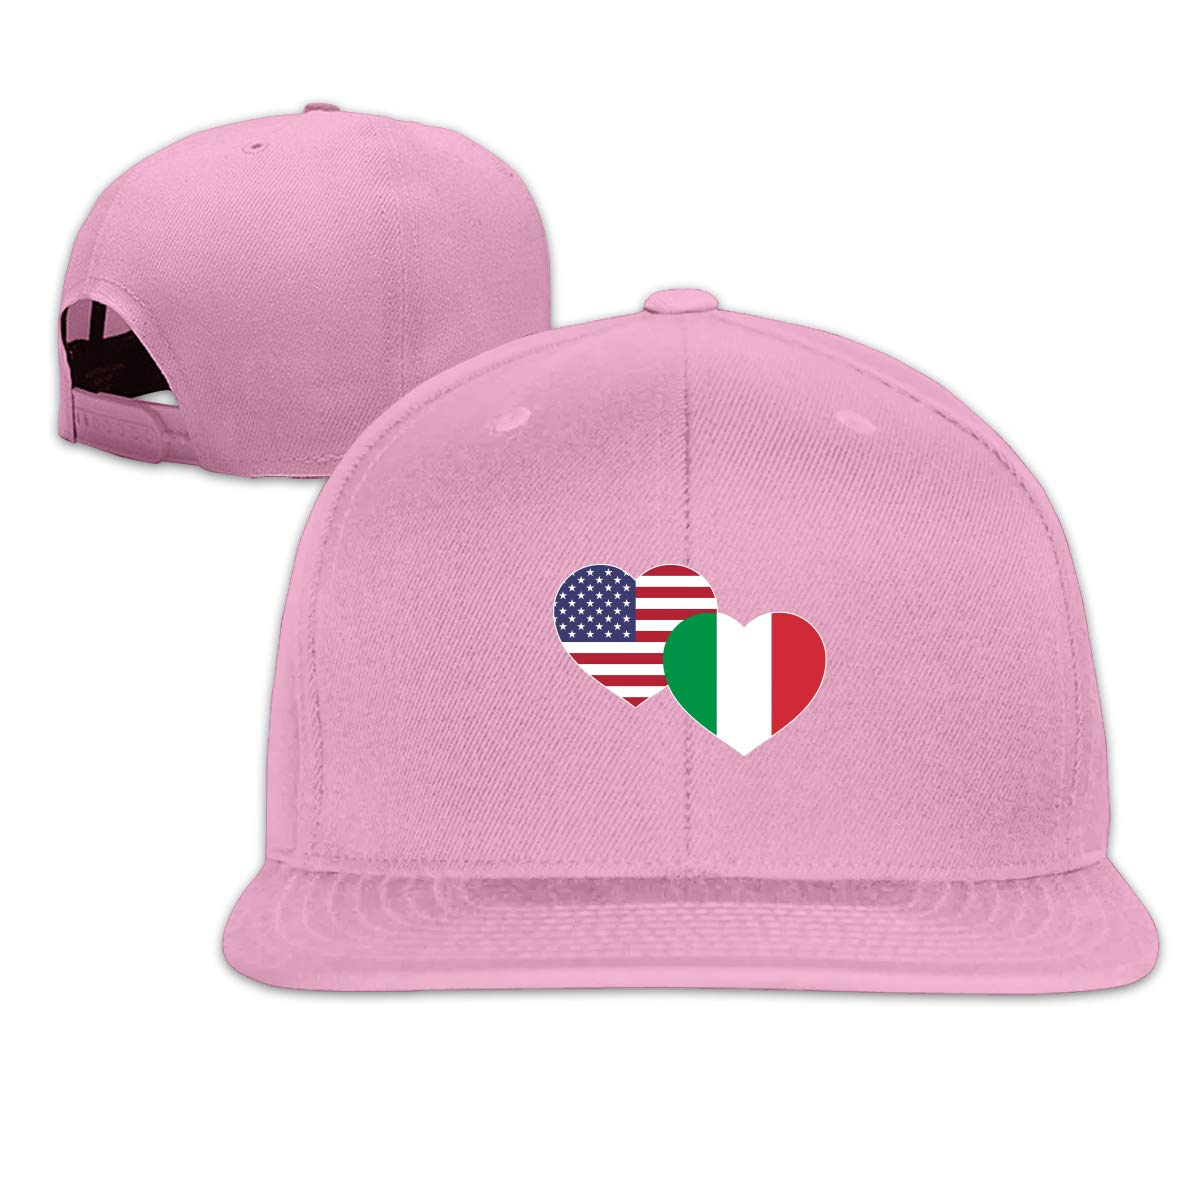 MOCSTONE Unisex Snapback Hat US Italian Flag Heart Adjustable Baseball Cap